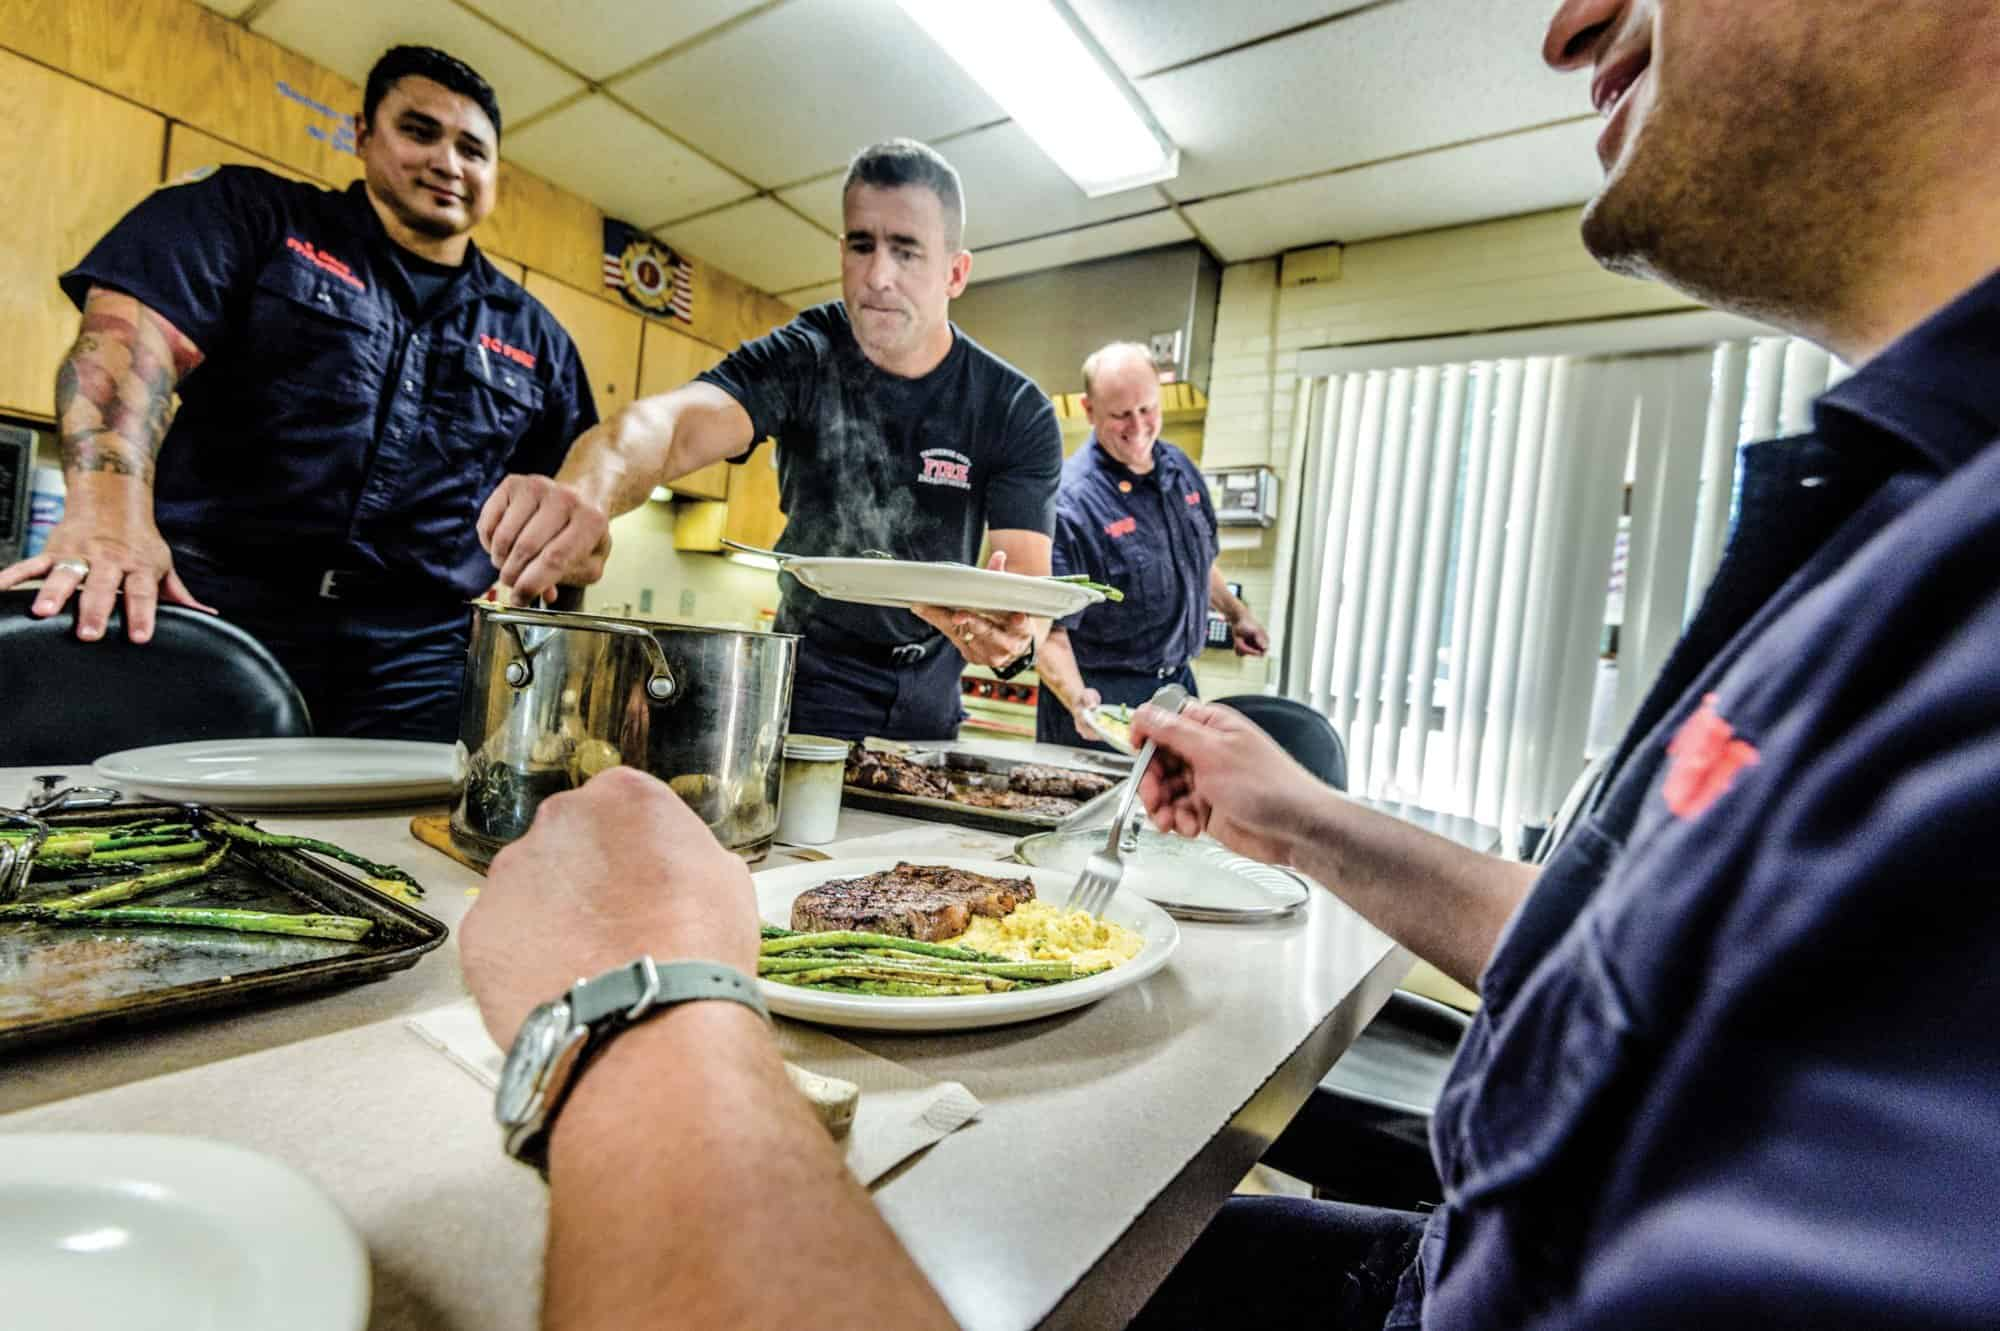 Firefighters in Traverse City enjoying a grilled BBQ meal.